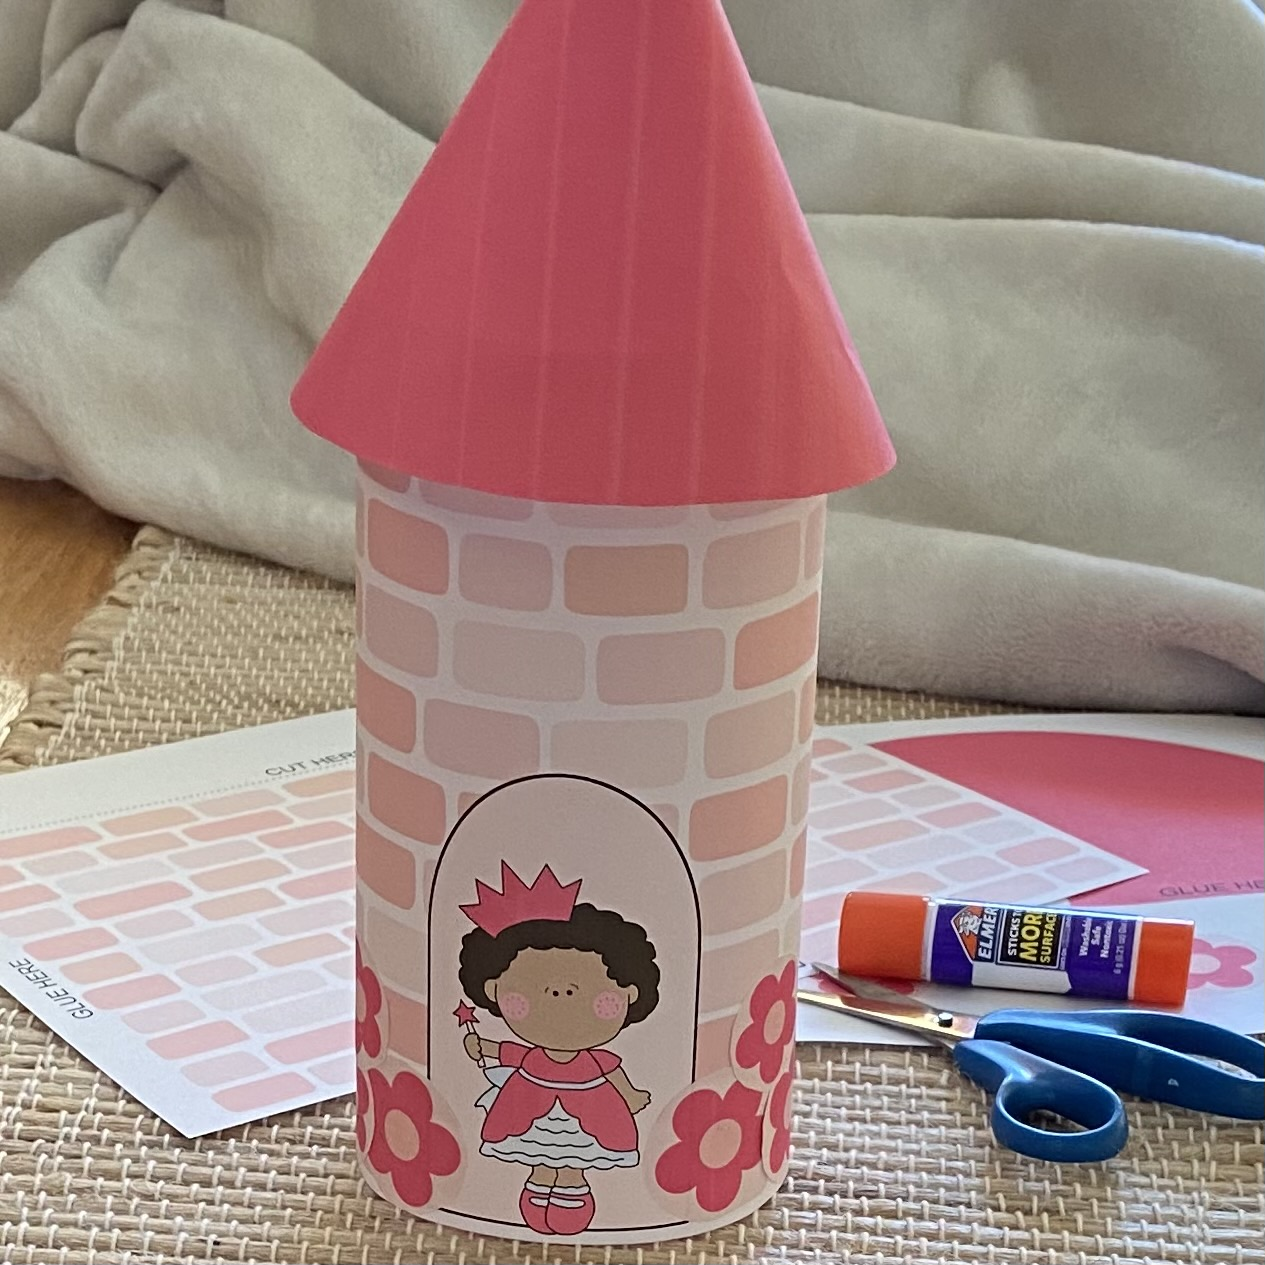 Easy DIY Castle appropriate for small children